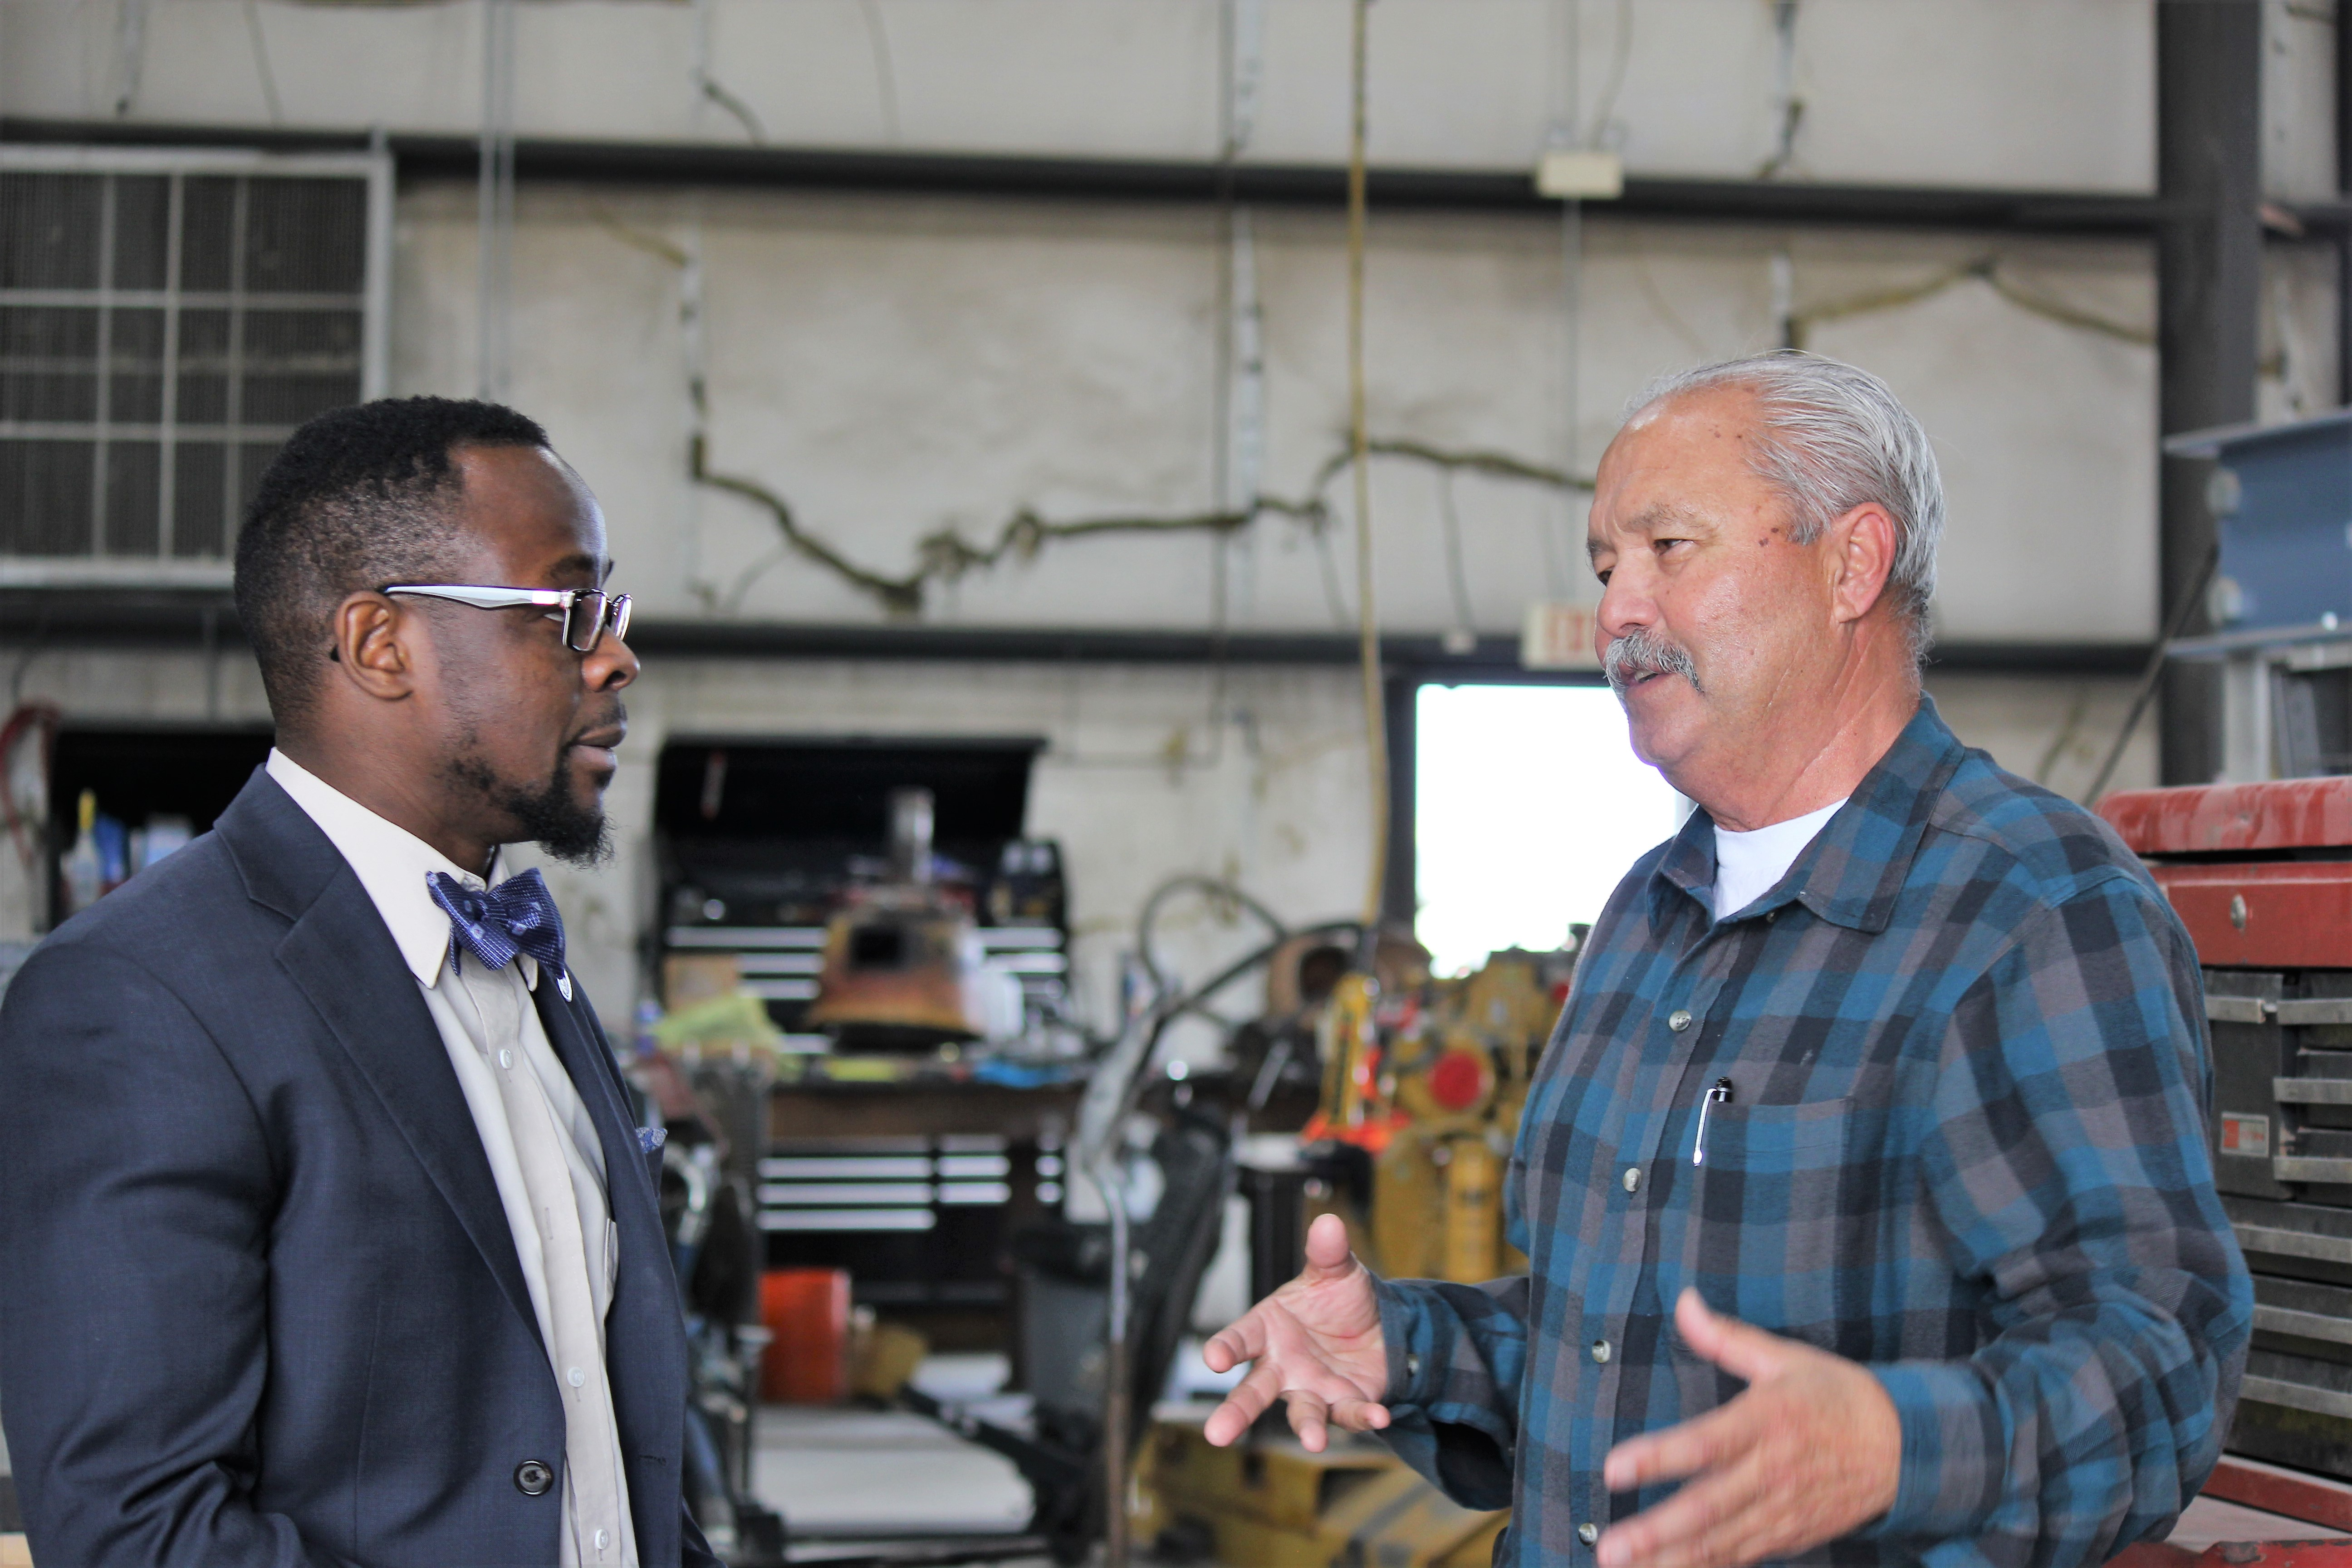 Nevada Looks To Apprenticeship Programs To Build On Jobs Growth Workingnation